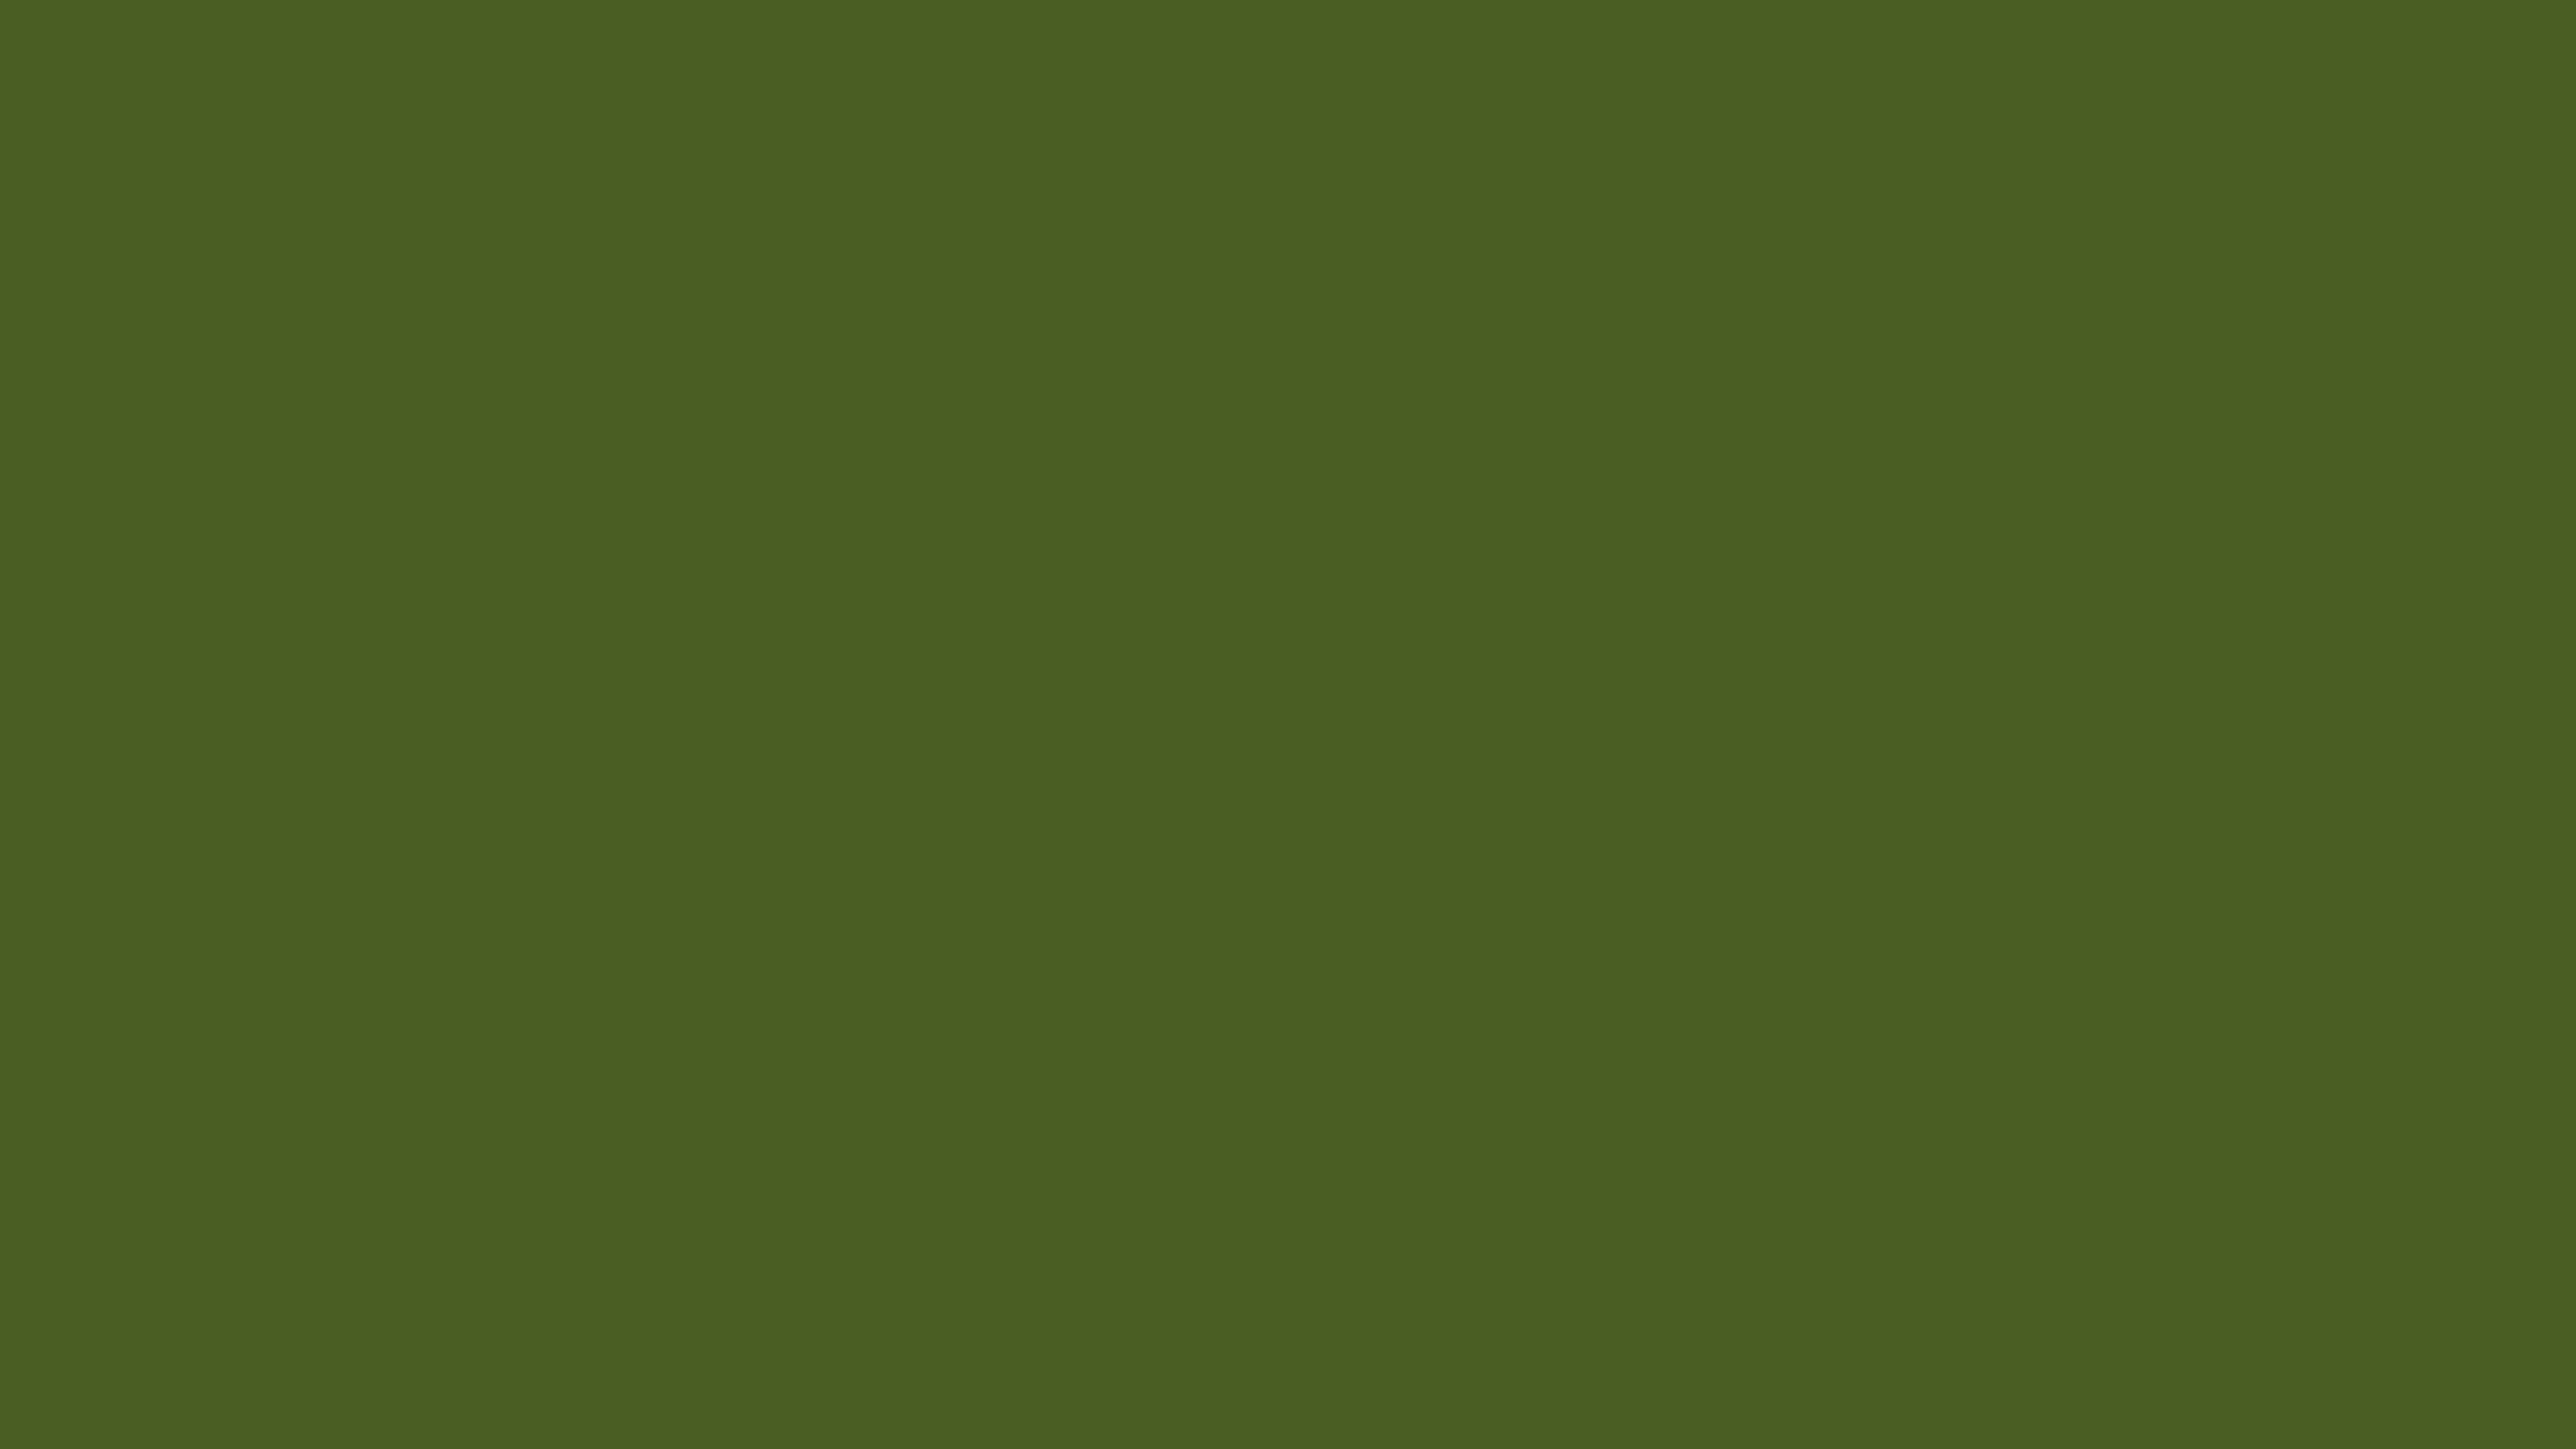 7680x4320 Dark Moss Green Solid Color Background